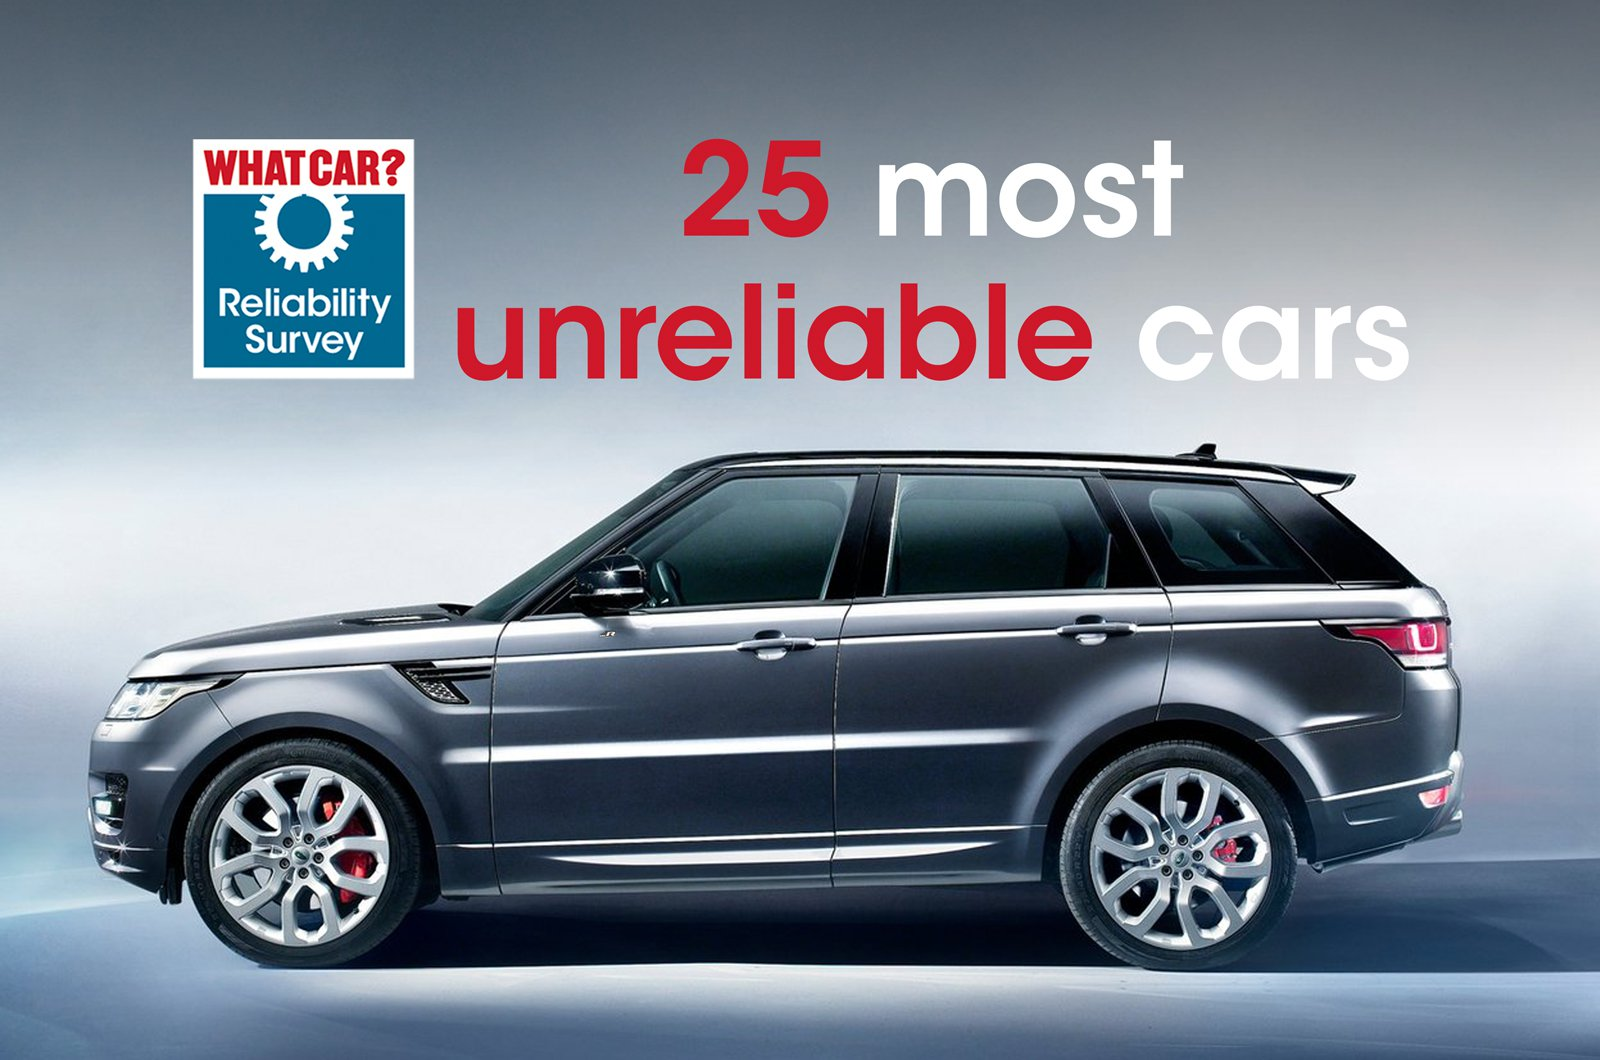 25 most unreliable cars